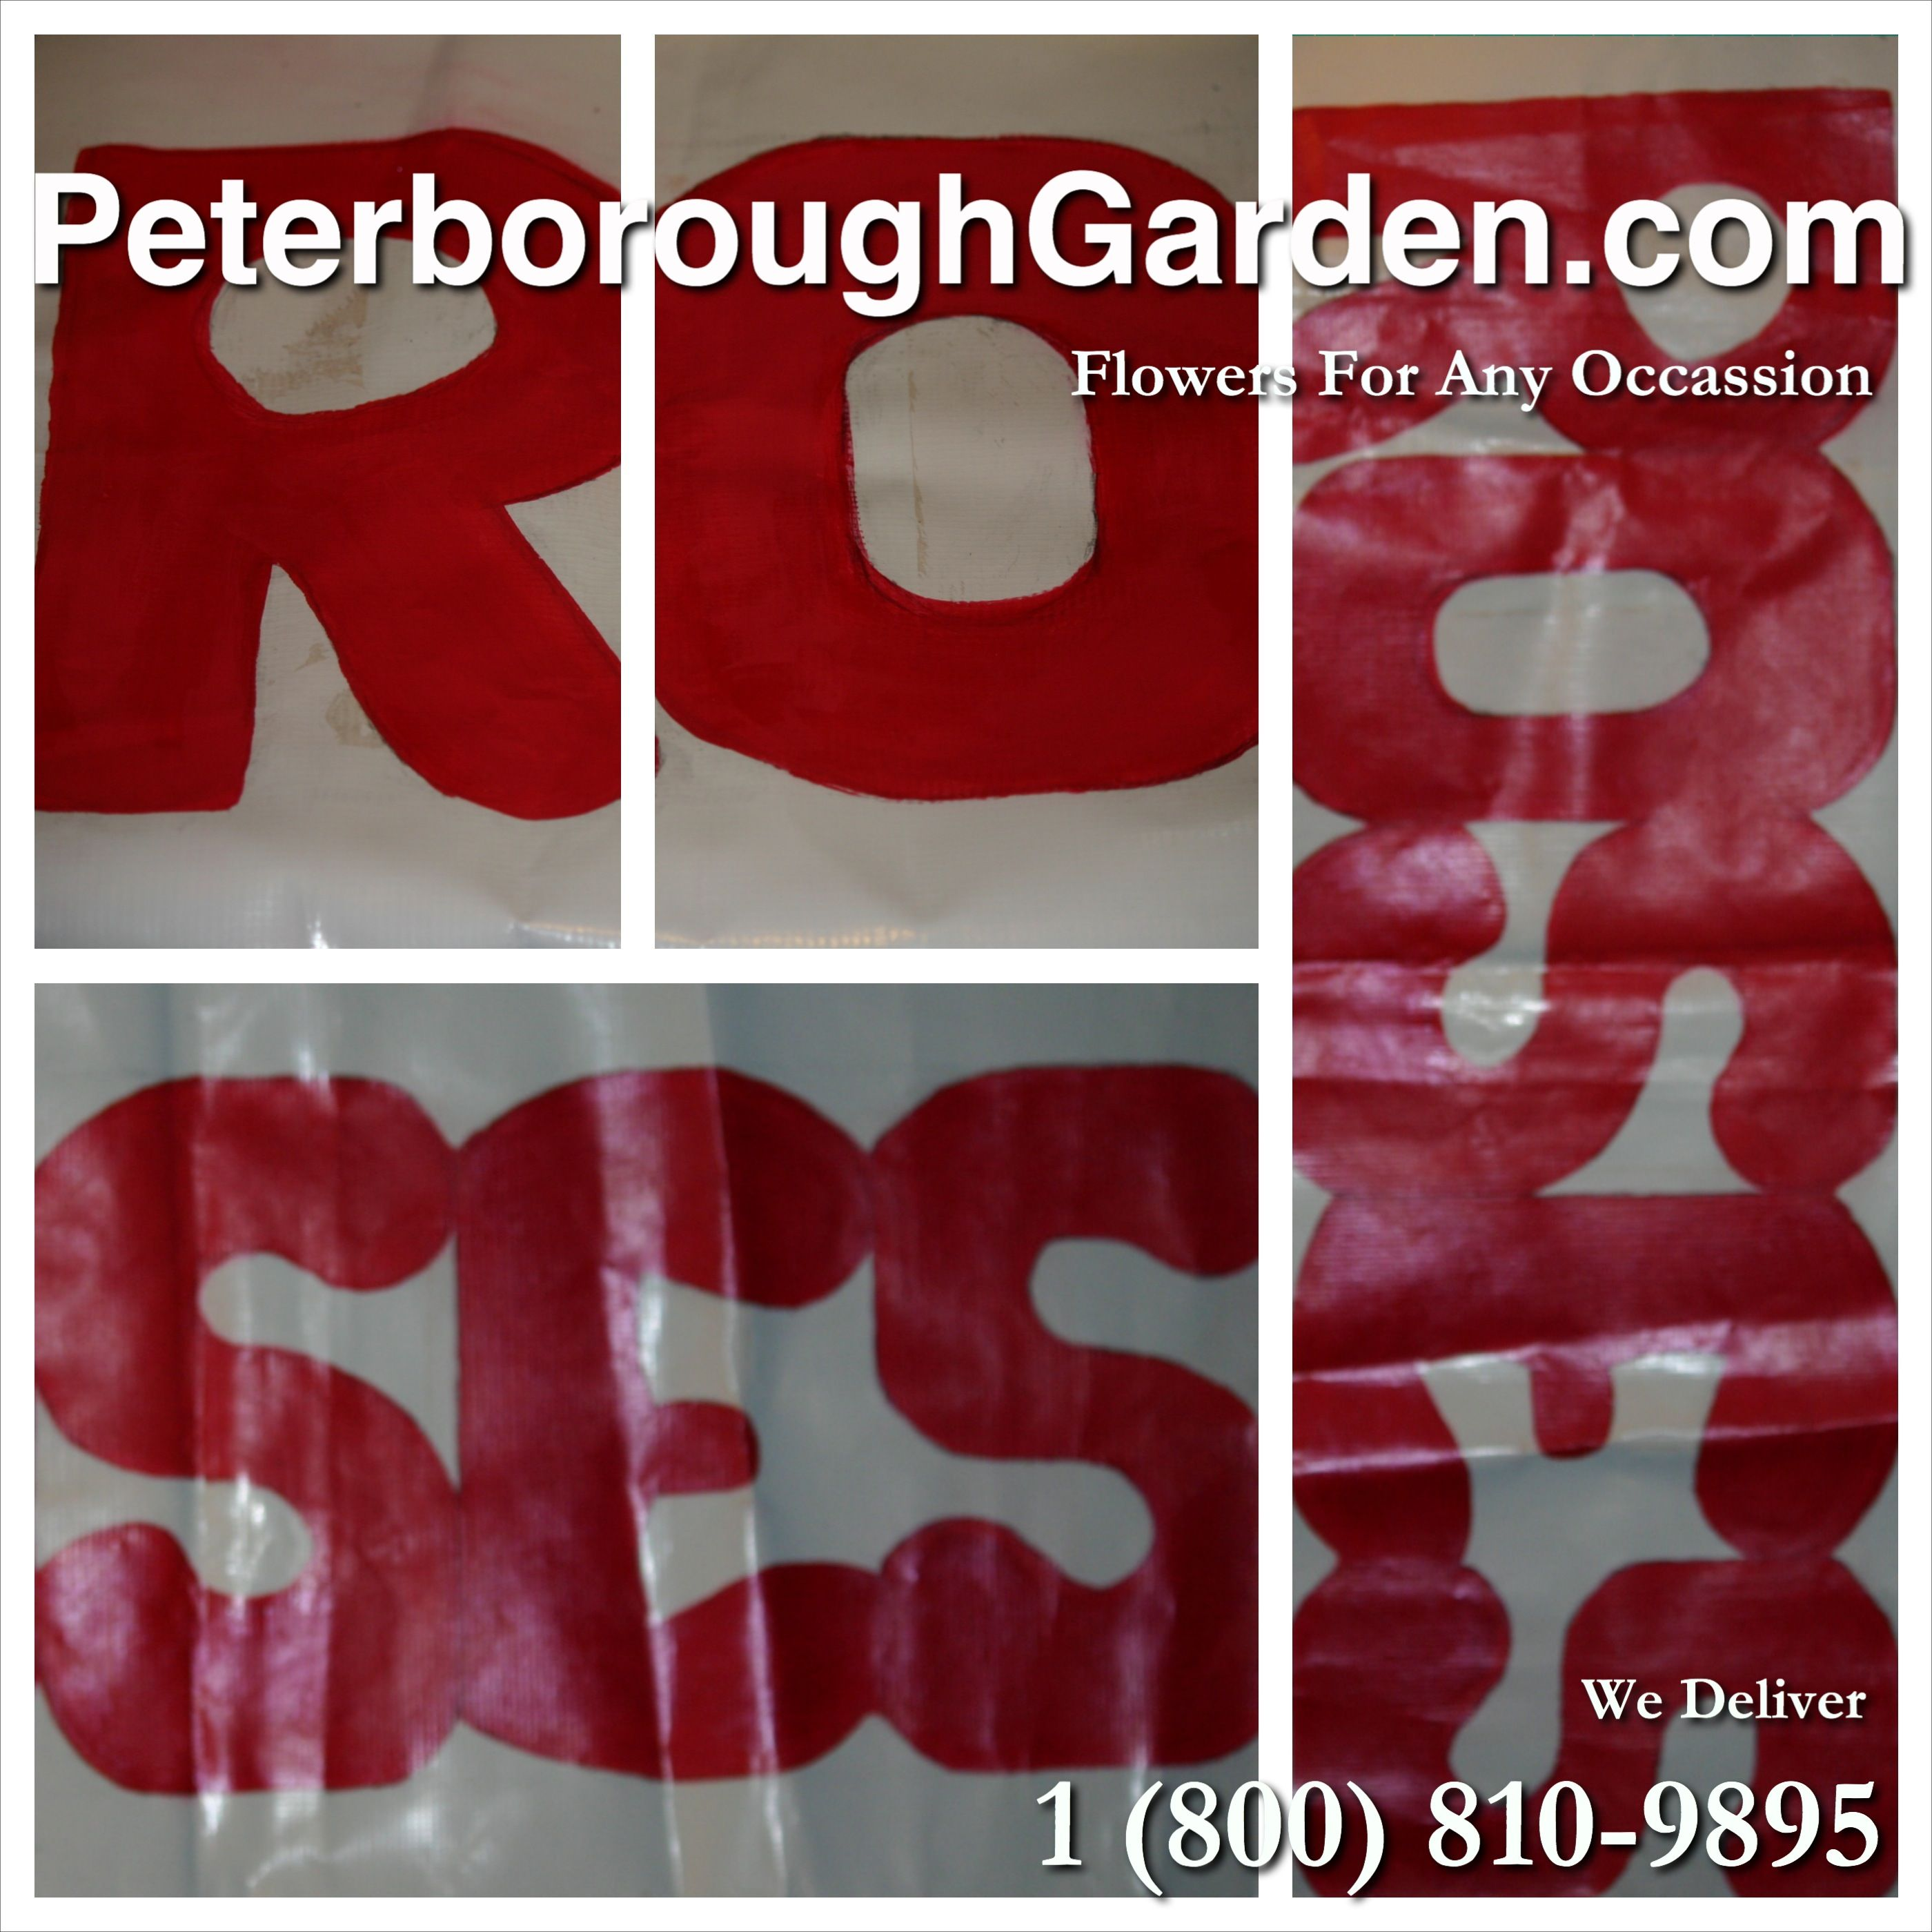 We sell roses in bulk, whether you need a 100 or 1000, call us at (705) 745-1428!